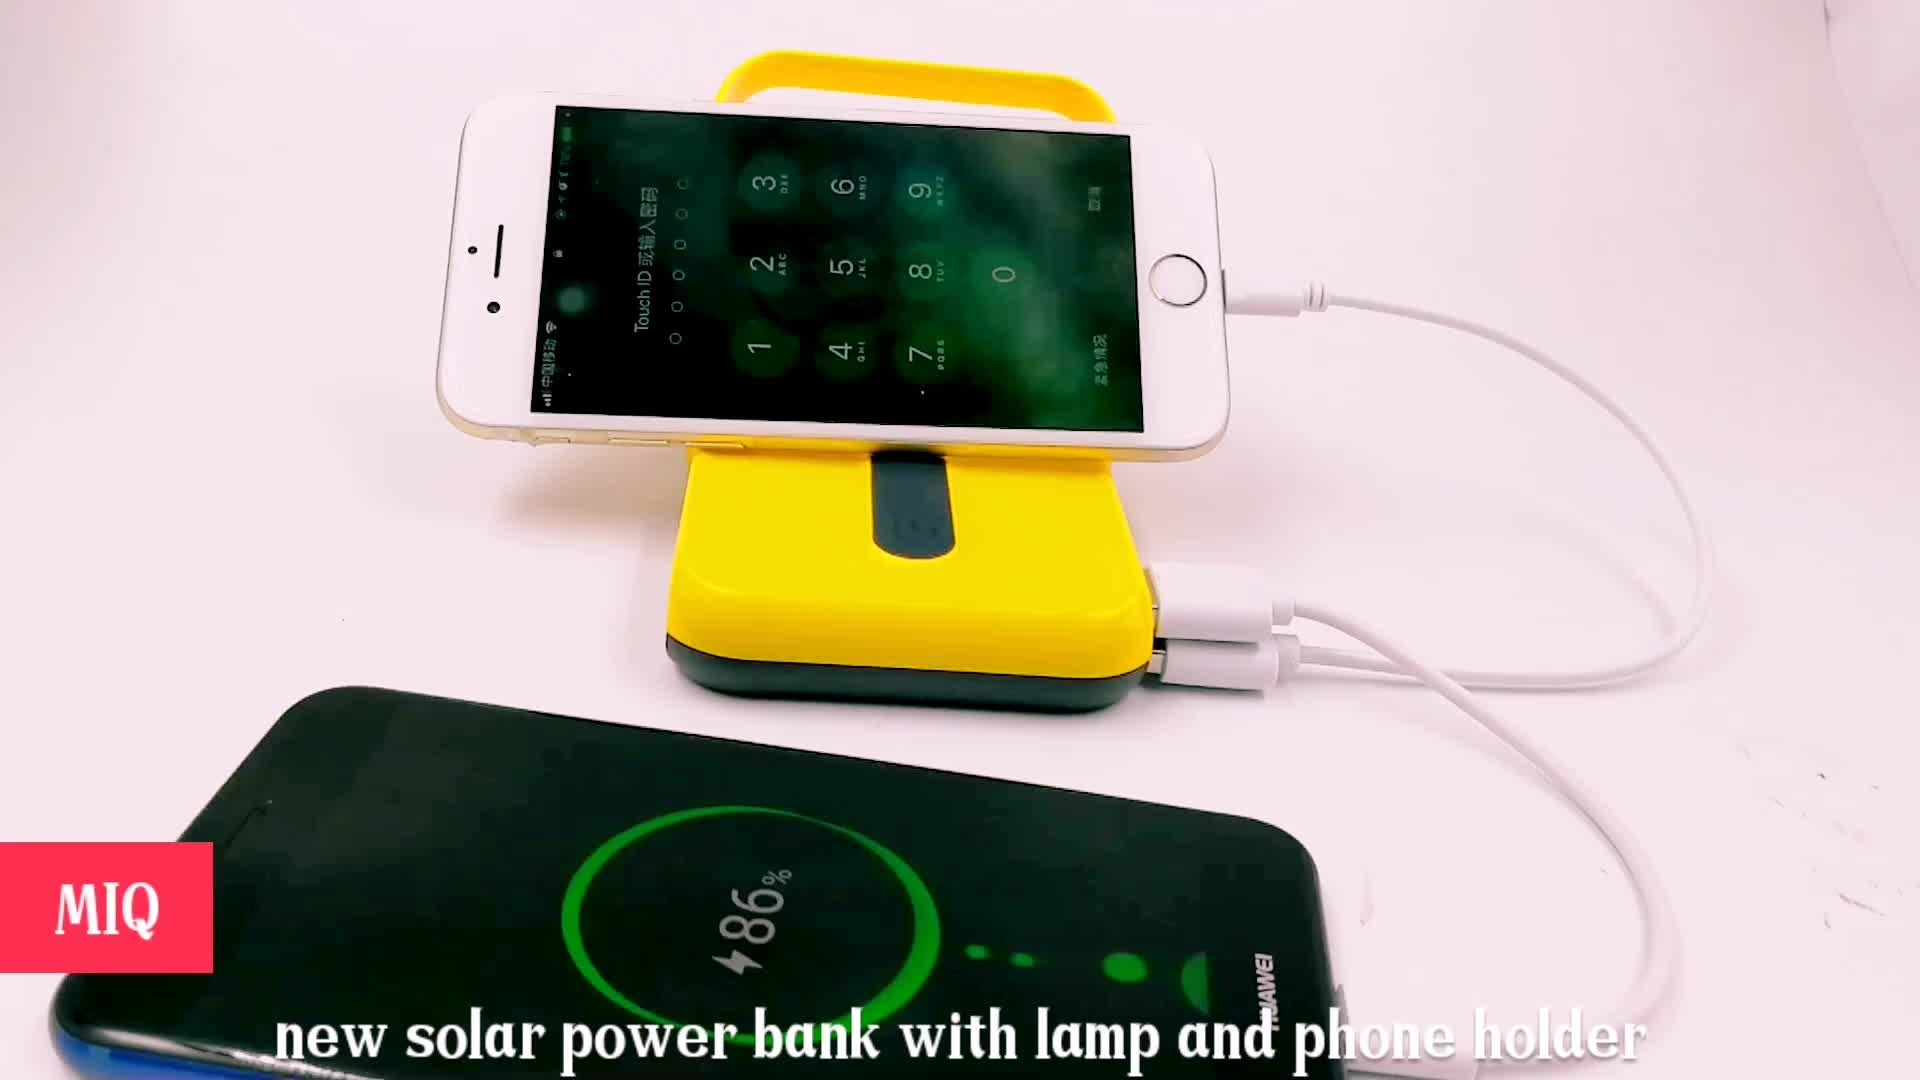 MIQ 10000 mAh Solar Power Bank Powerbank External Battery Portable Charger LED Light Hanger for Xiaomi for iPhone